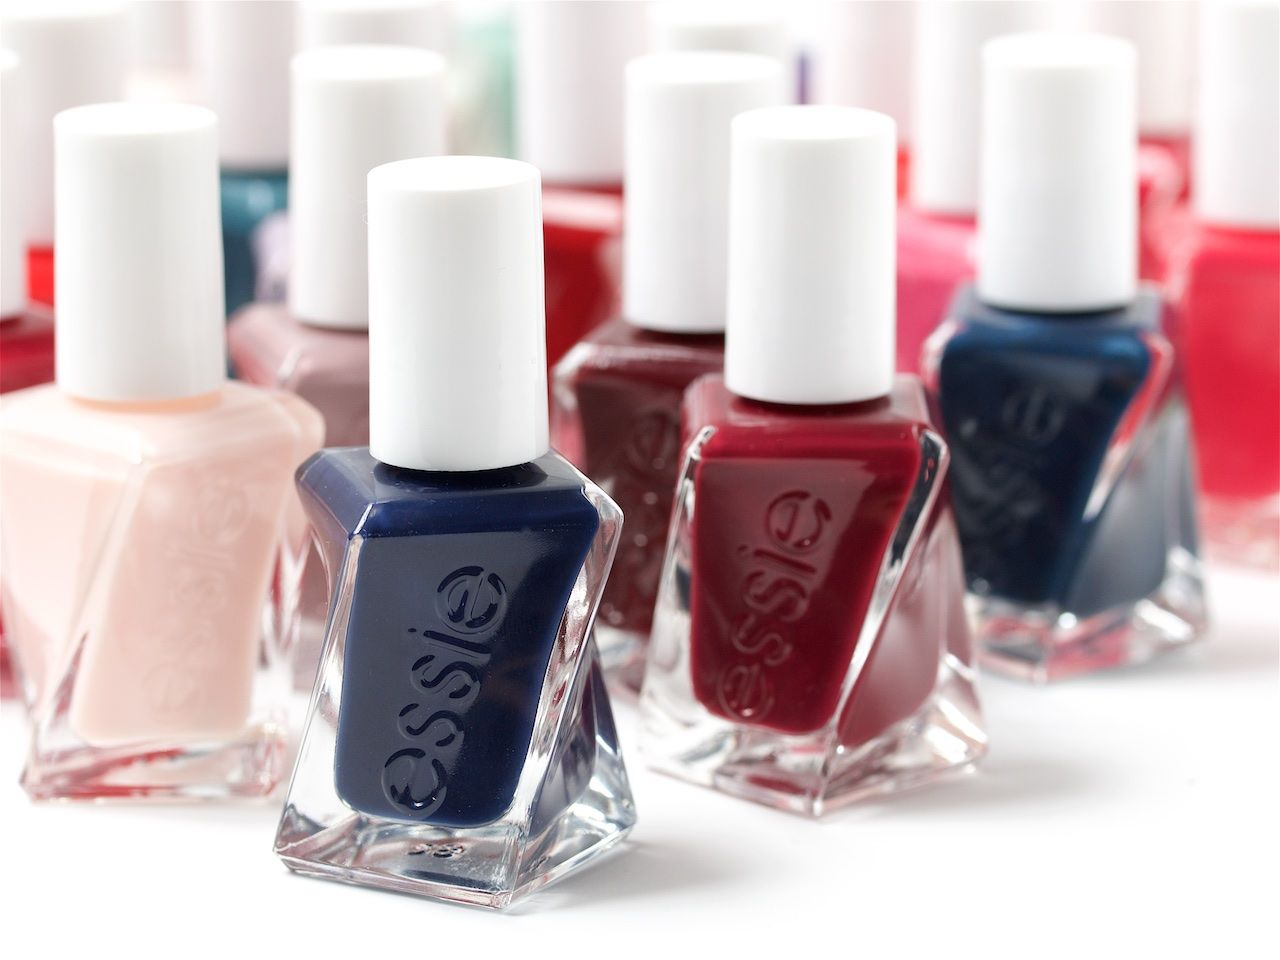 Essie's Upcoming Gel Couture Actually Delivers 14-Day Wear